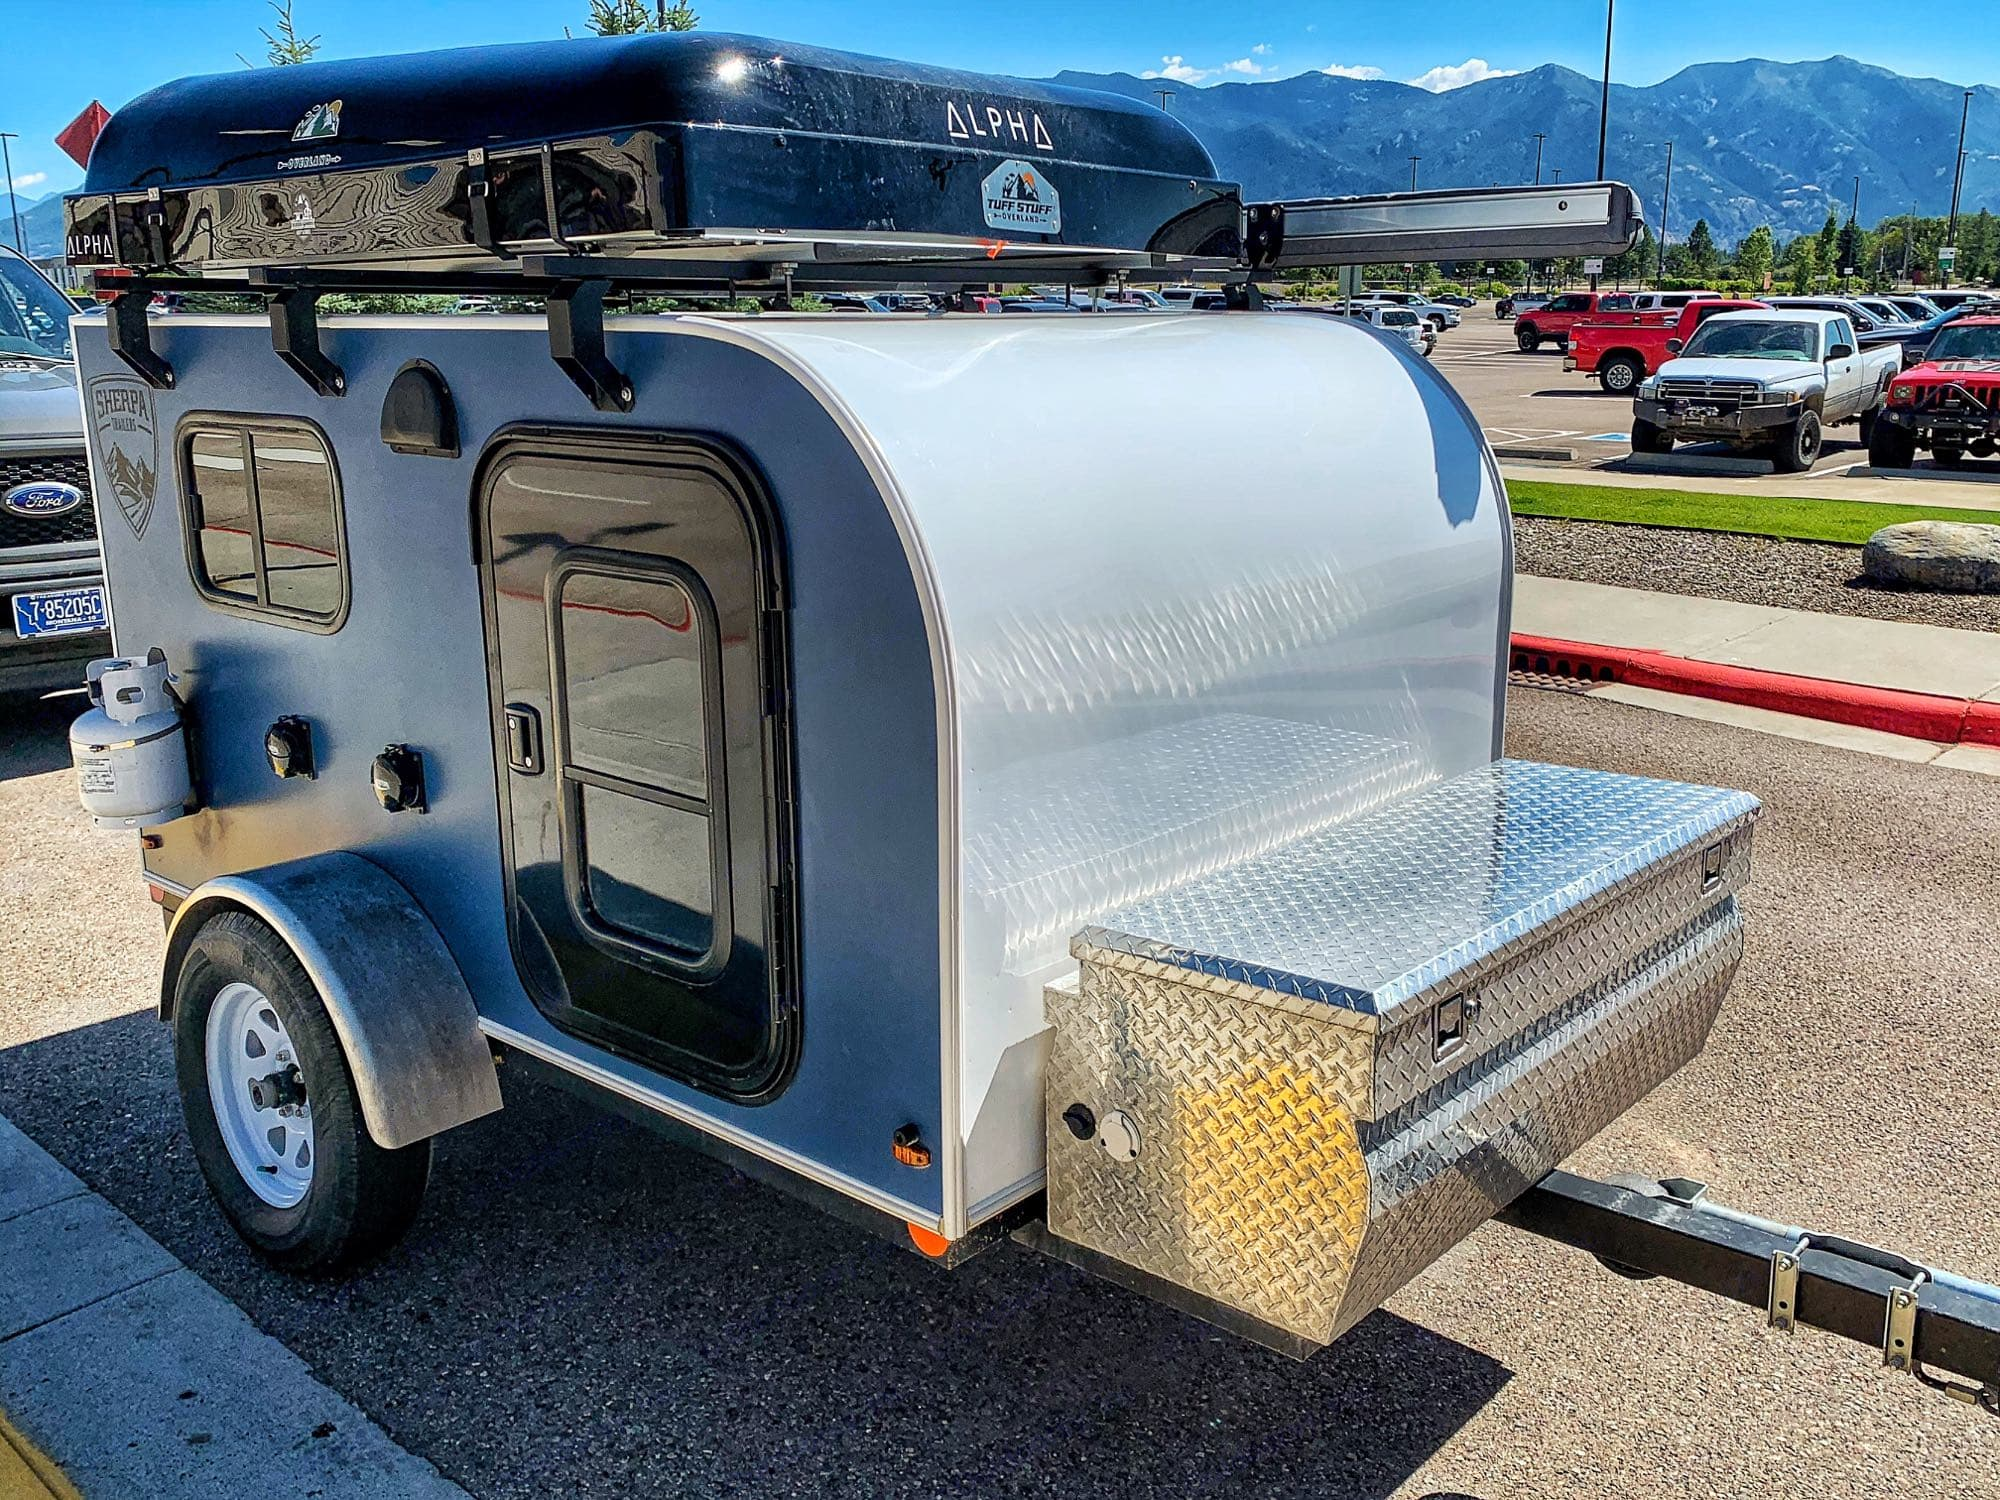 Easy to tow, small enough to setup almost anywhere.. Camper Trailer Adventure (X2) 2018